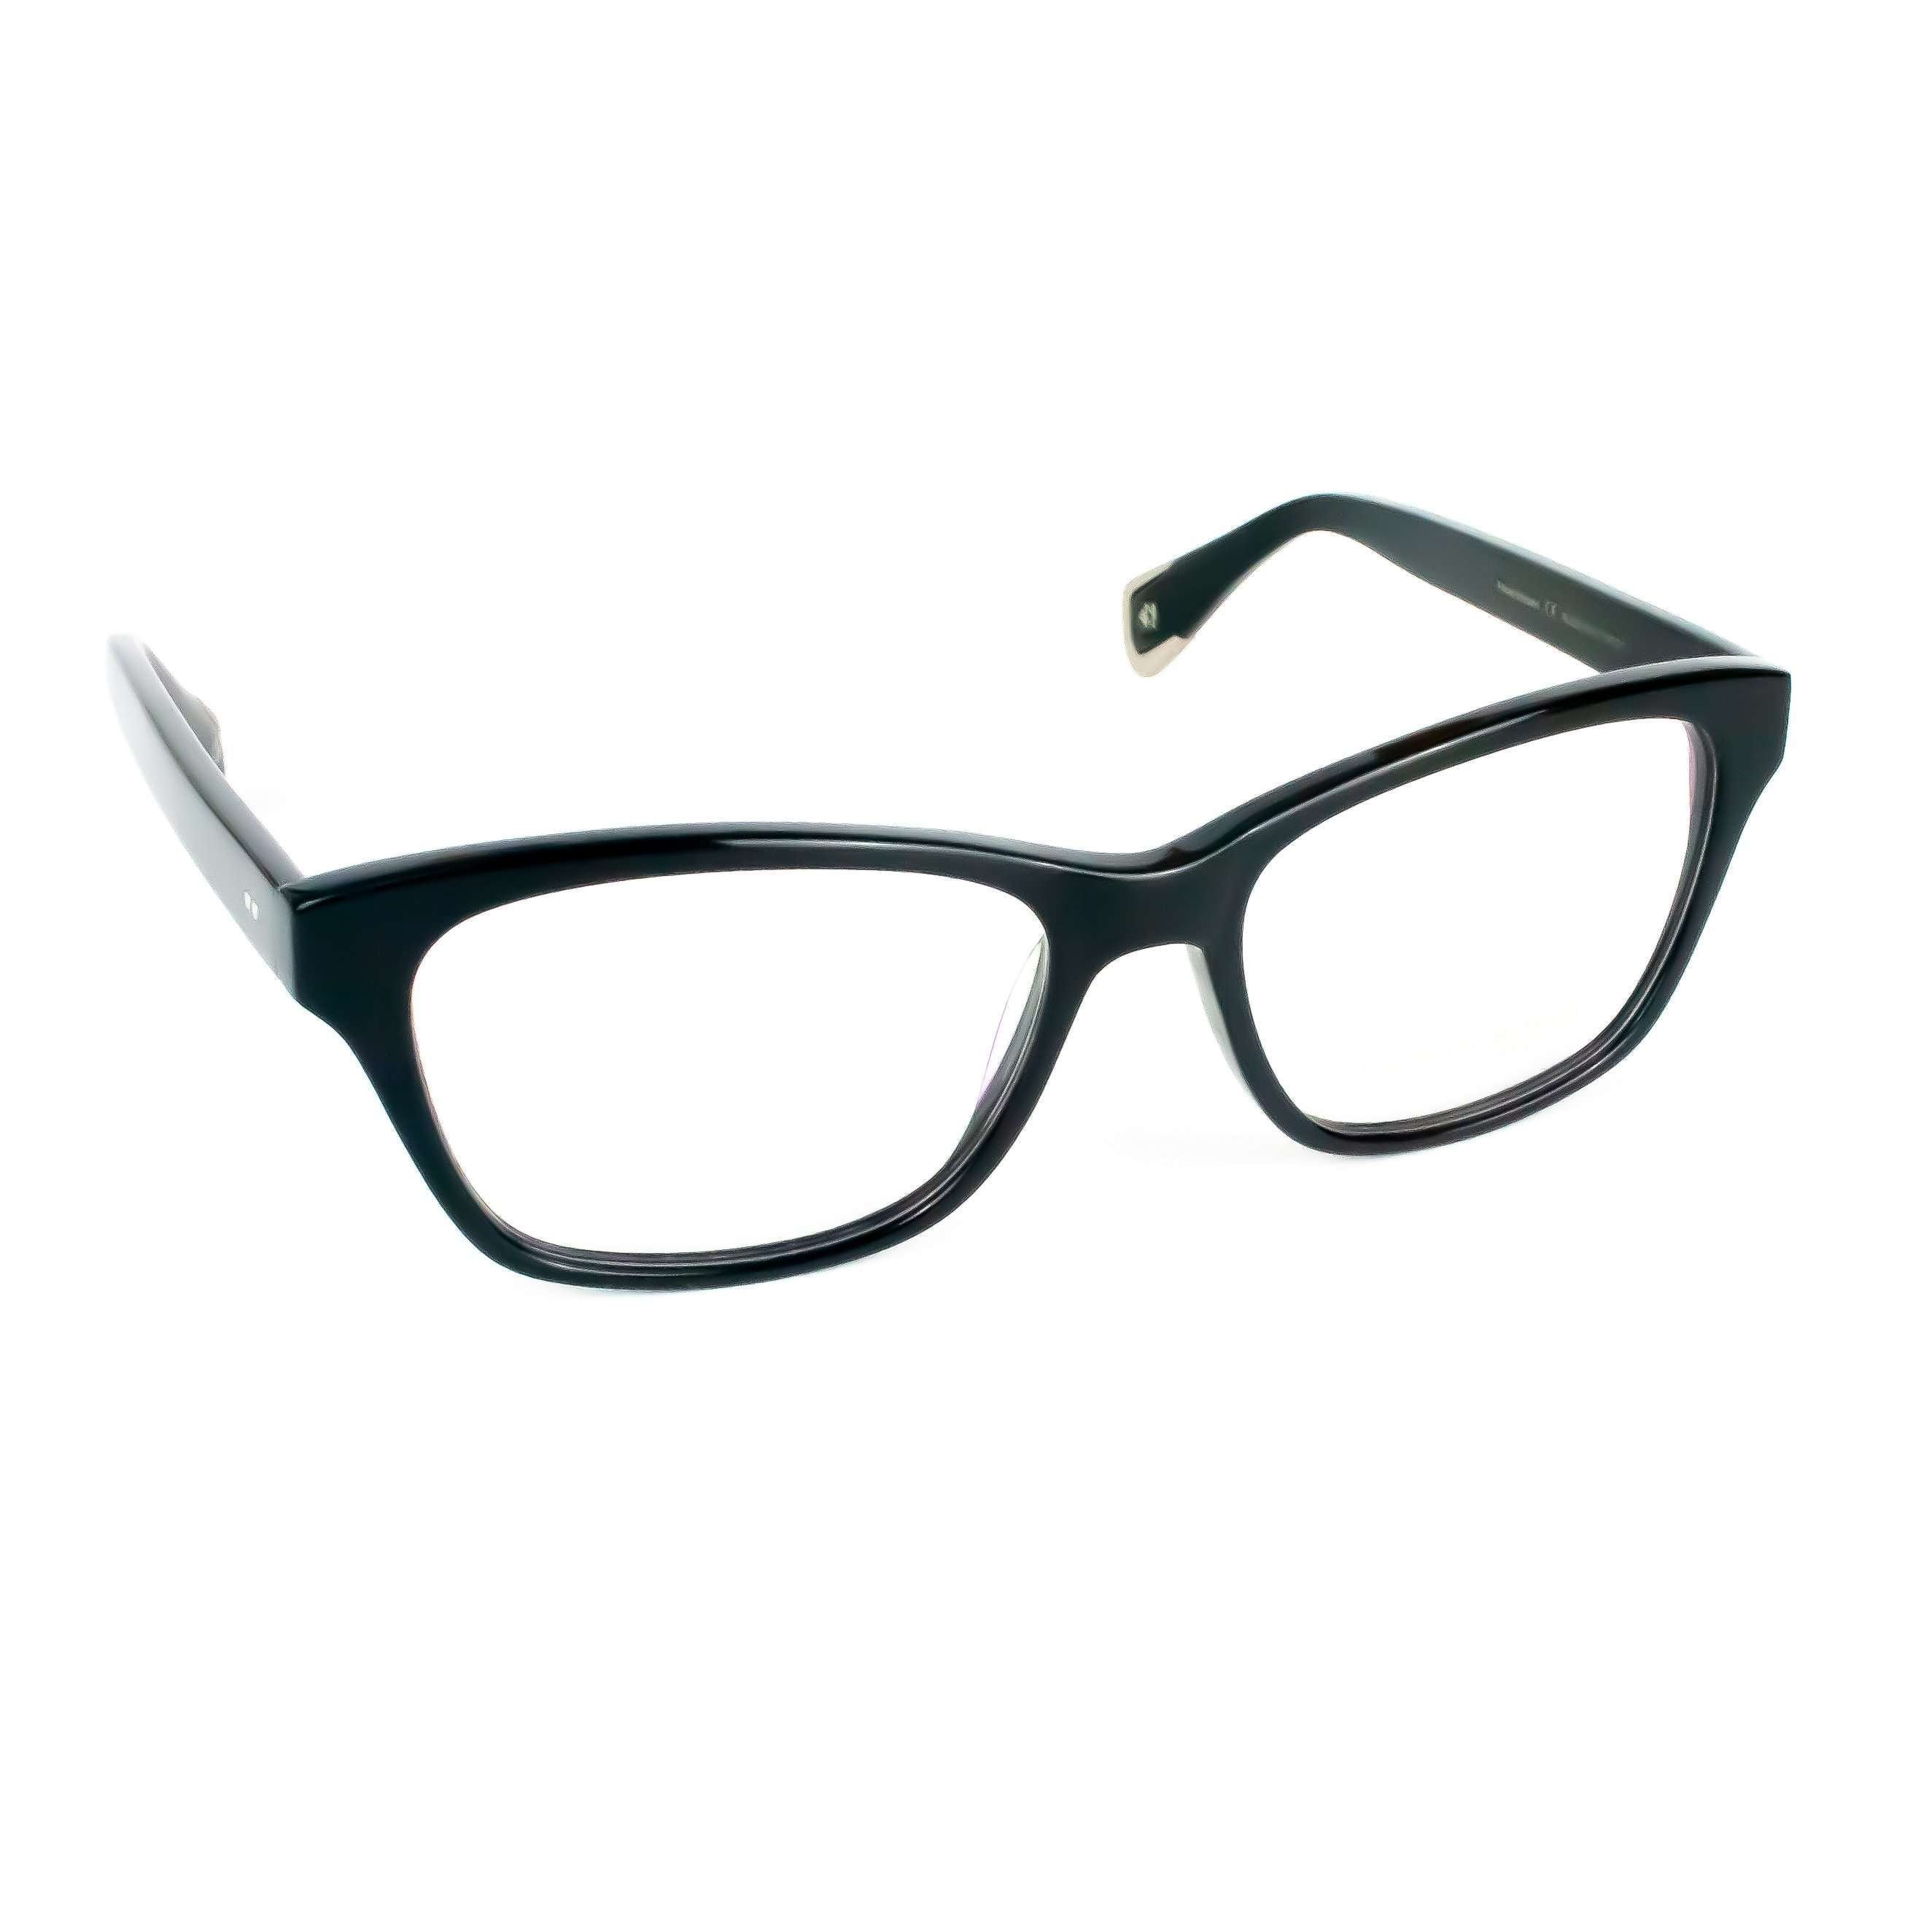 William Morris Black Label Model BL022 Black Unisex Glasses